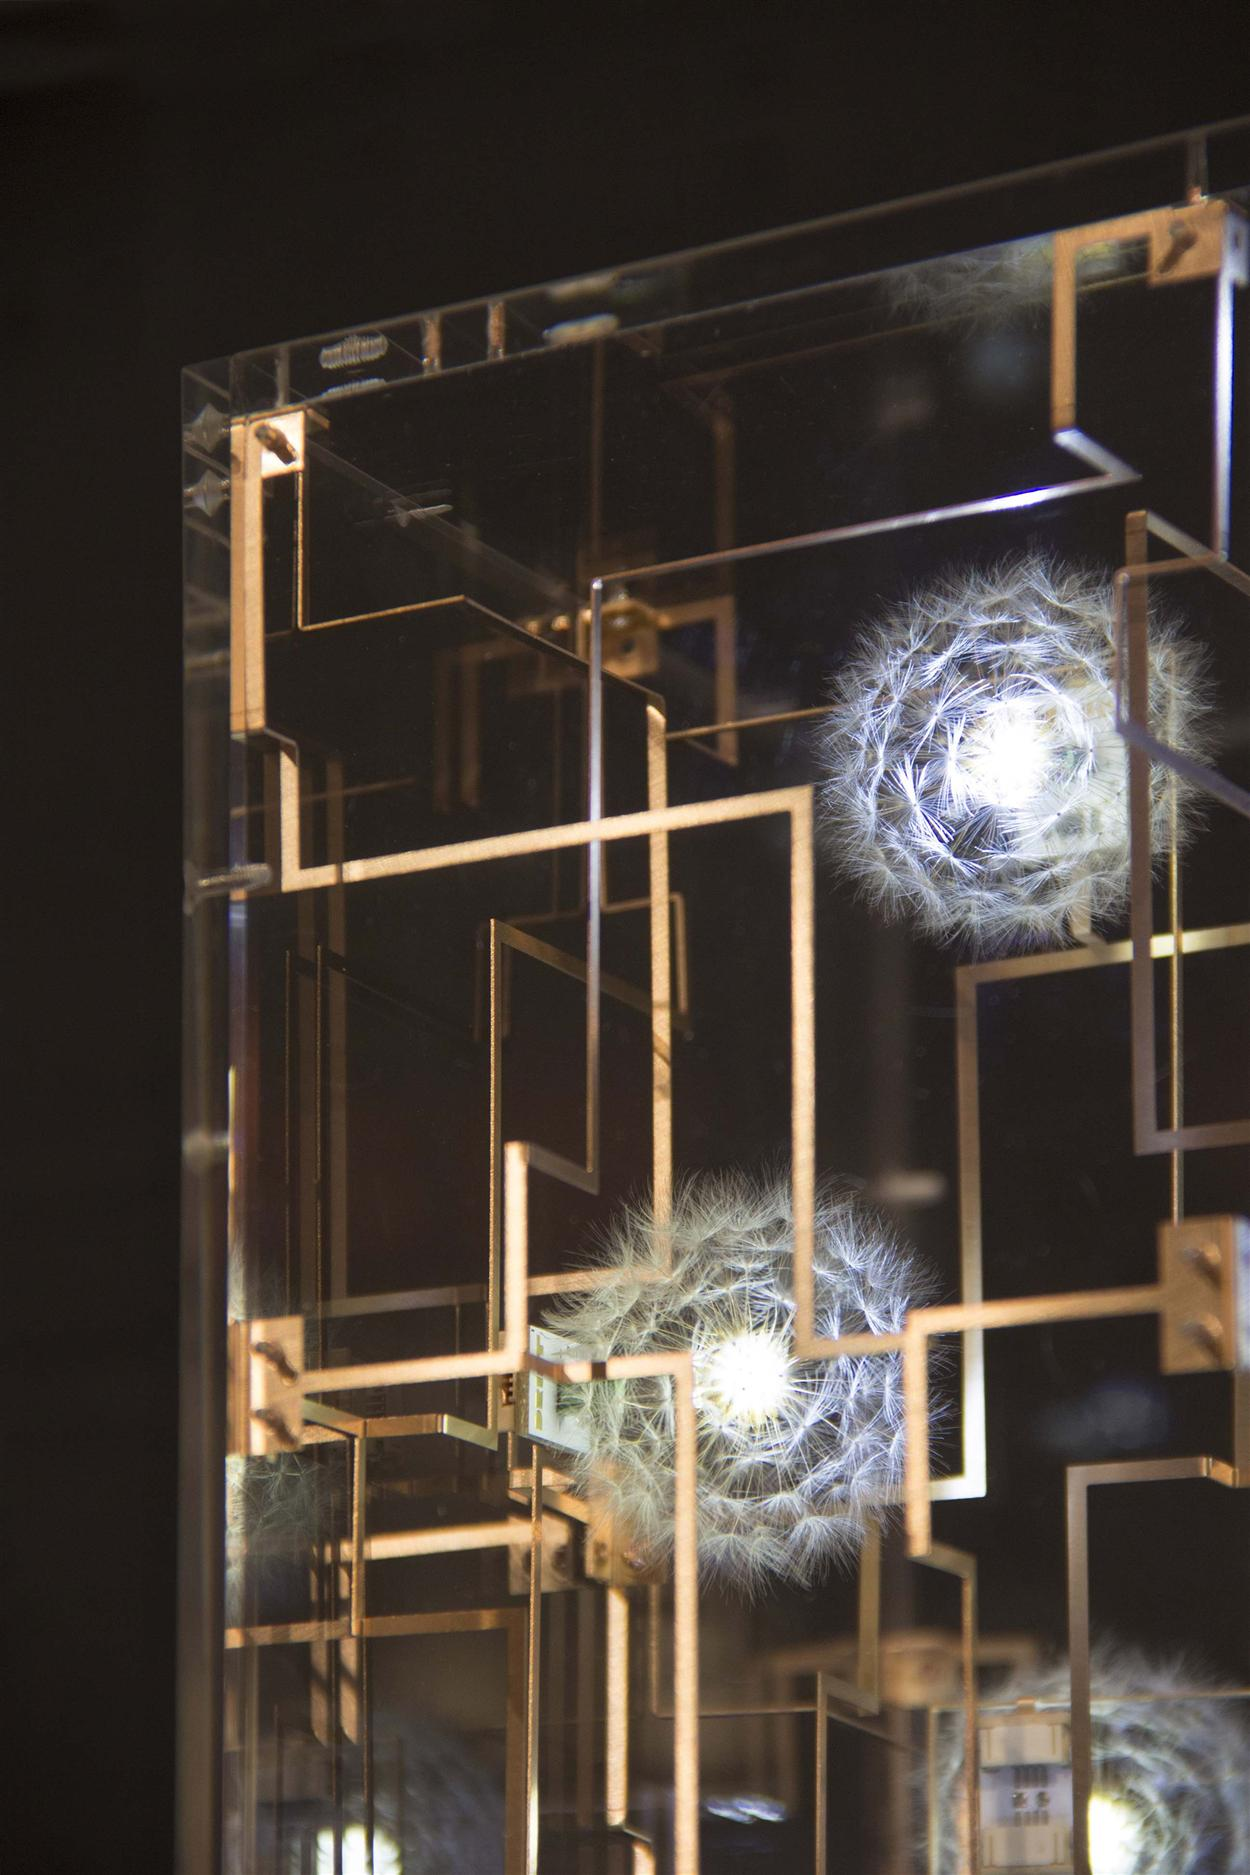 3c. Close-up, 'Fragile Future by Studio Drift. Carpenters Workshop Gallery